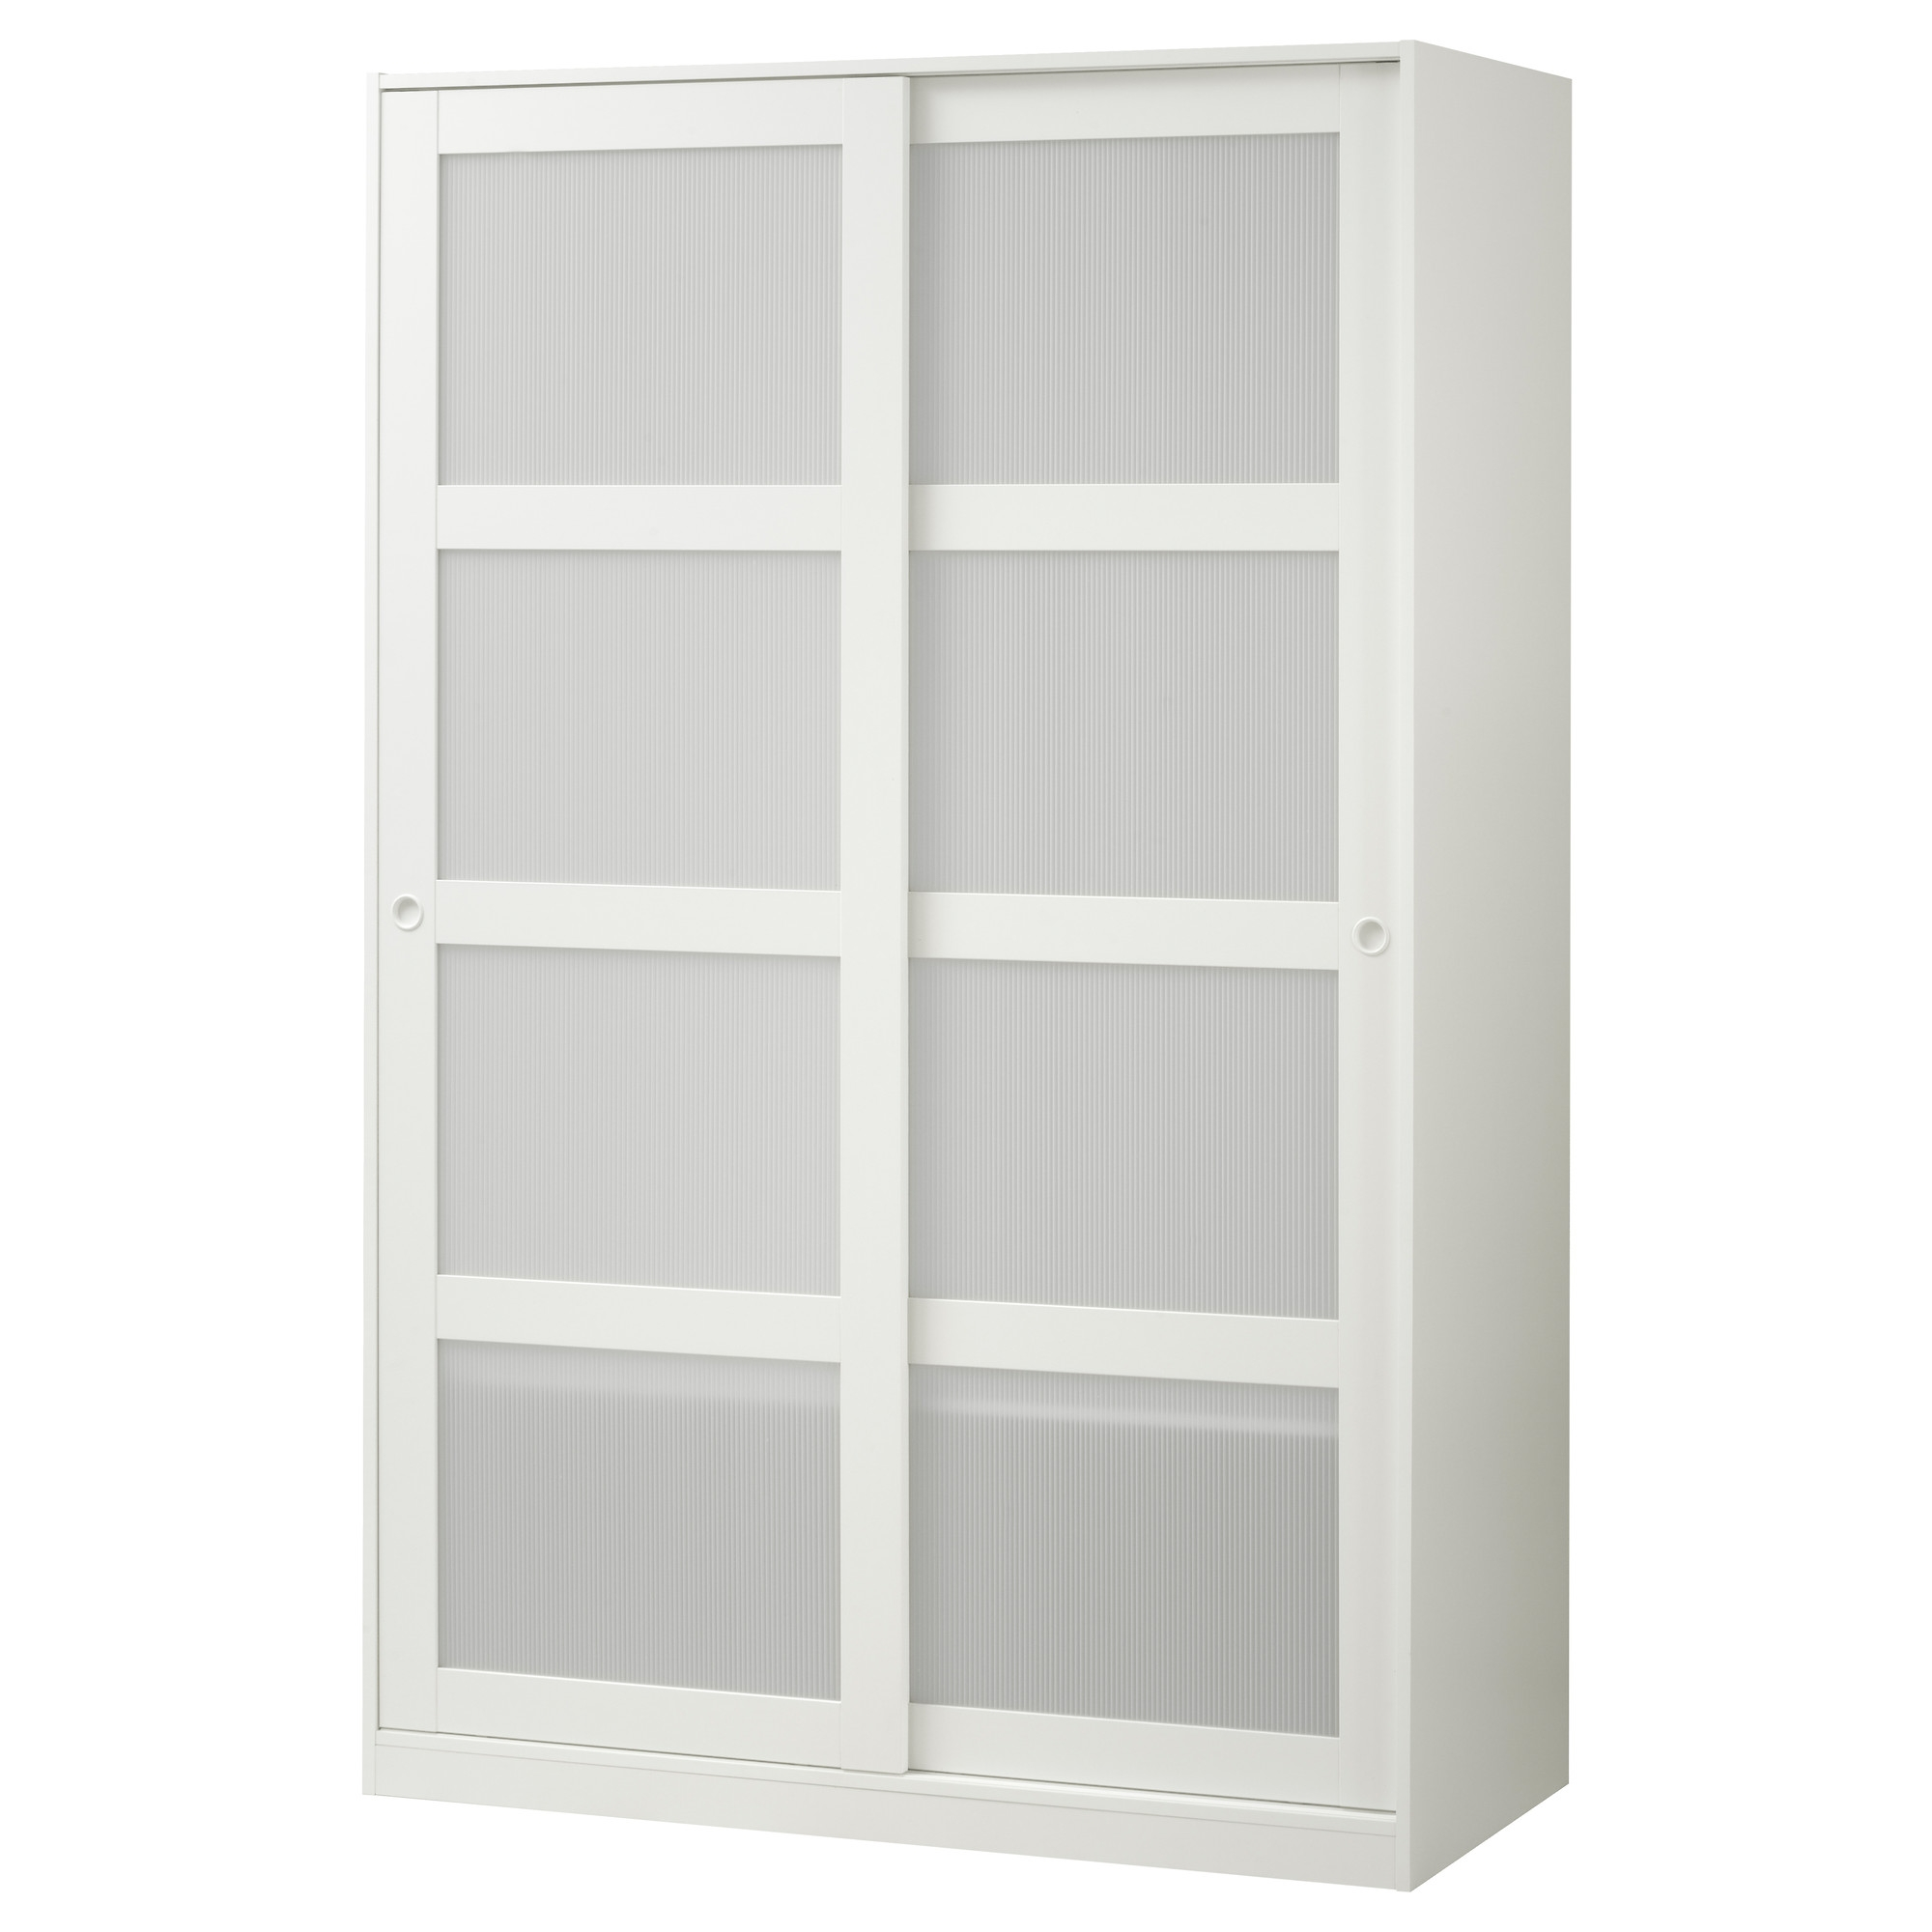 Wardrobes Armoires Closets Ikea In White Wardrobe Armoire (Image 22 of 25)